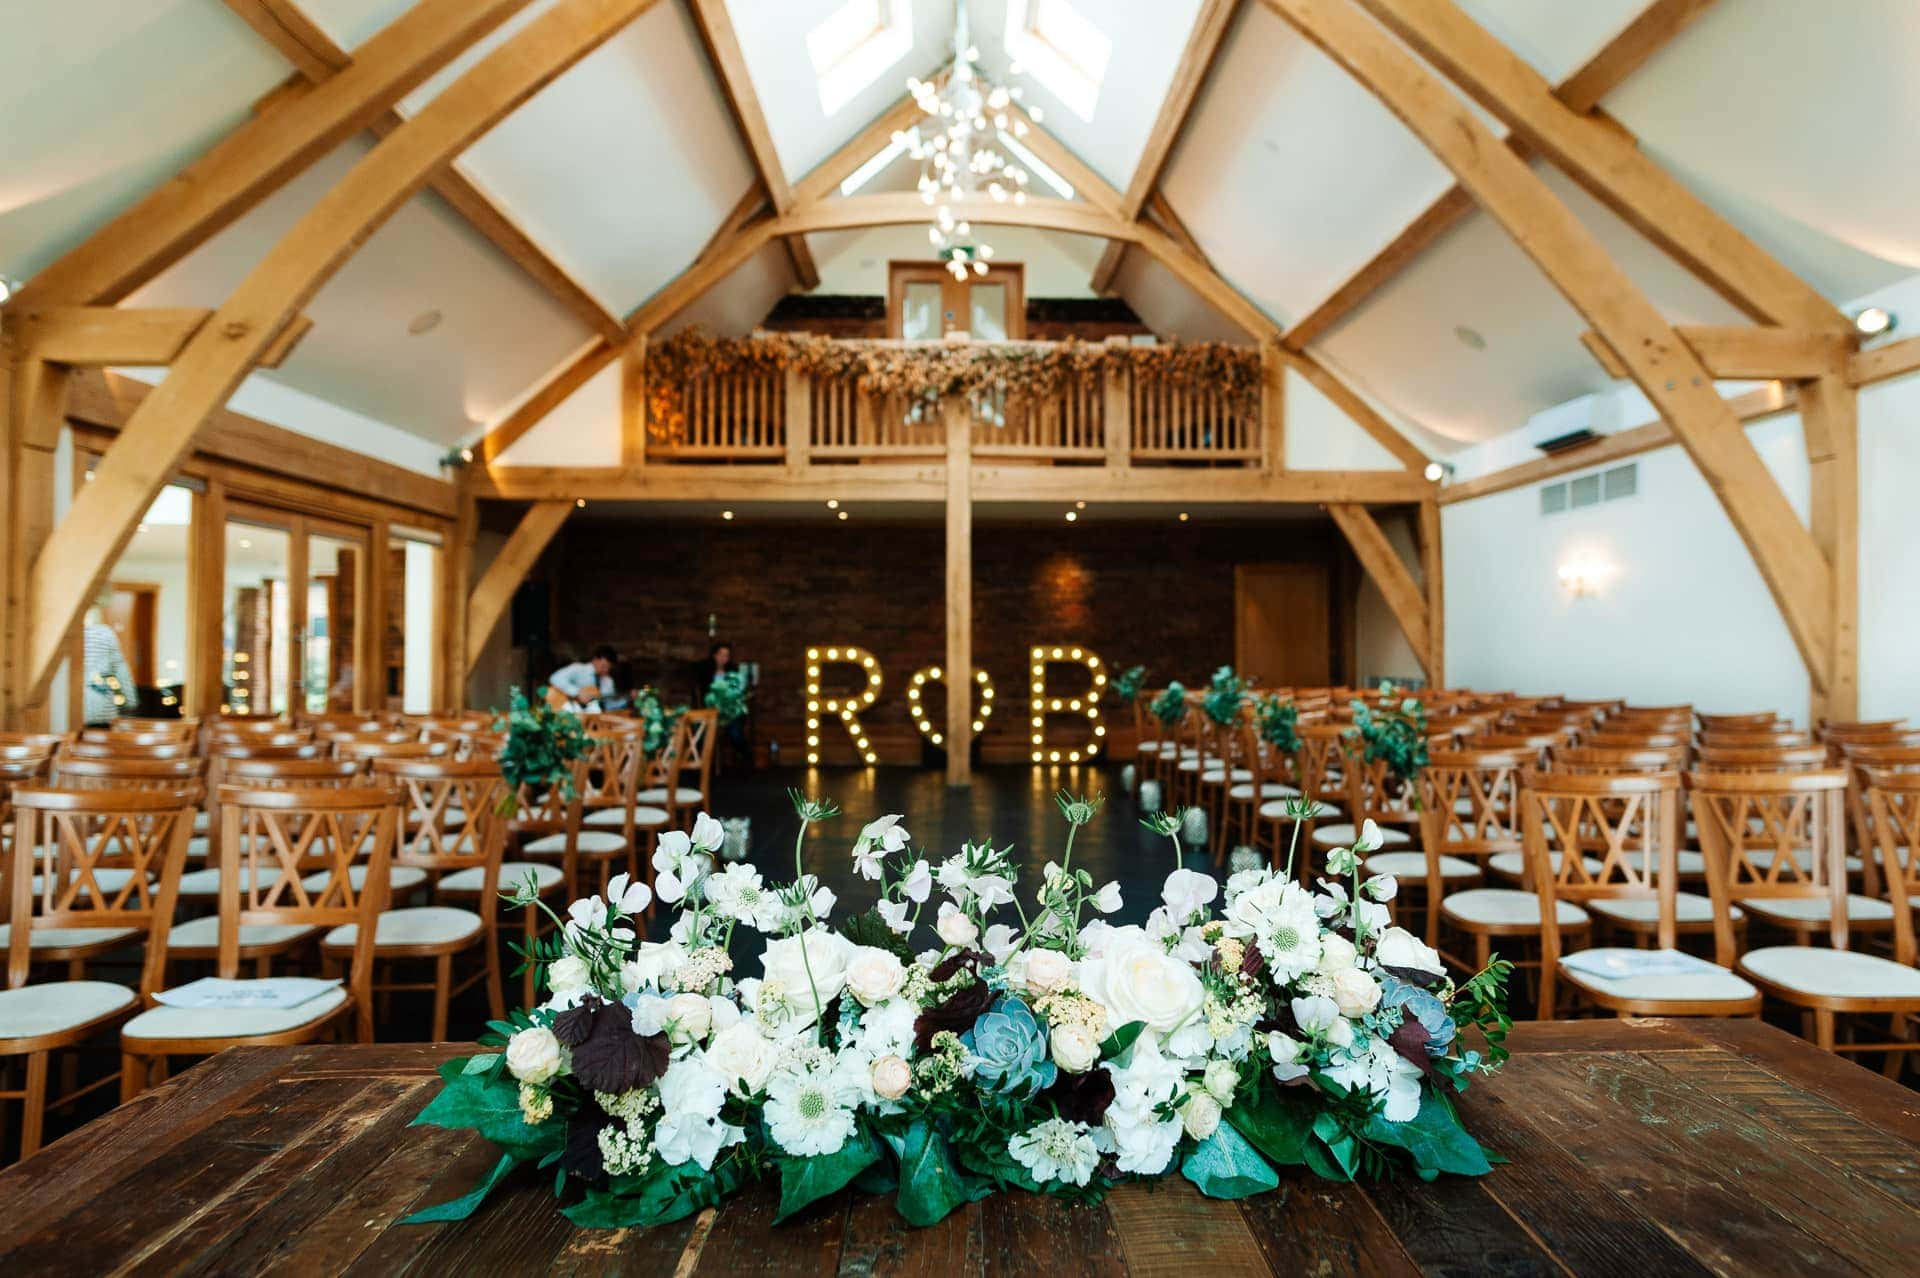 Mythe Barn | Jennifer Peel Photography